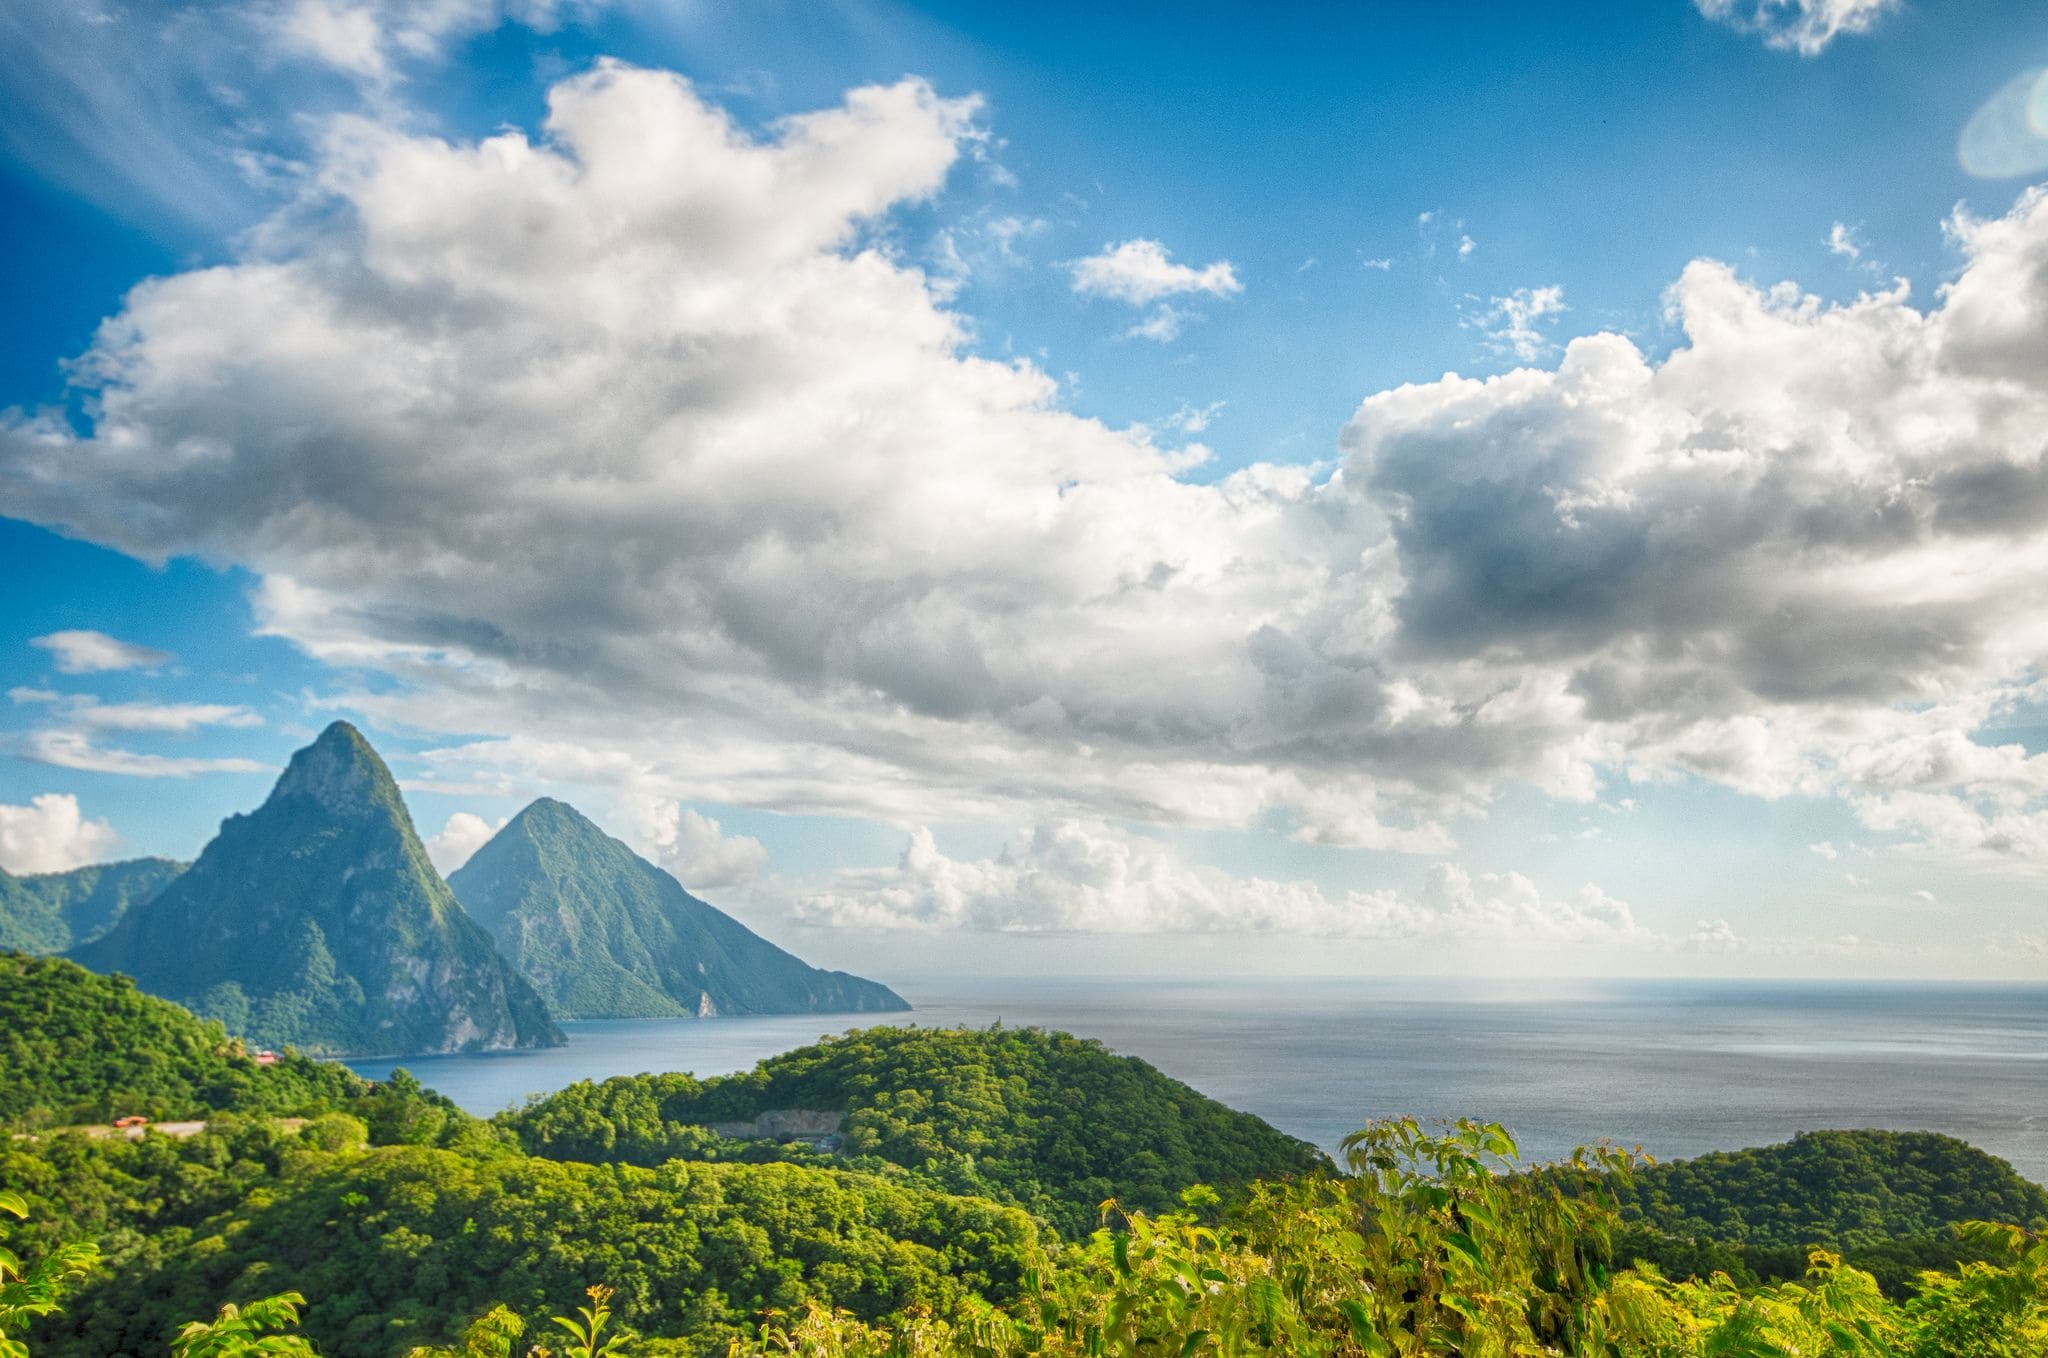 Super sexy St. Lucia, home of Chairman's Spiced Tea | Credit: Flickr user Jon Fife